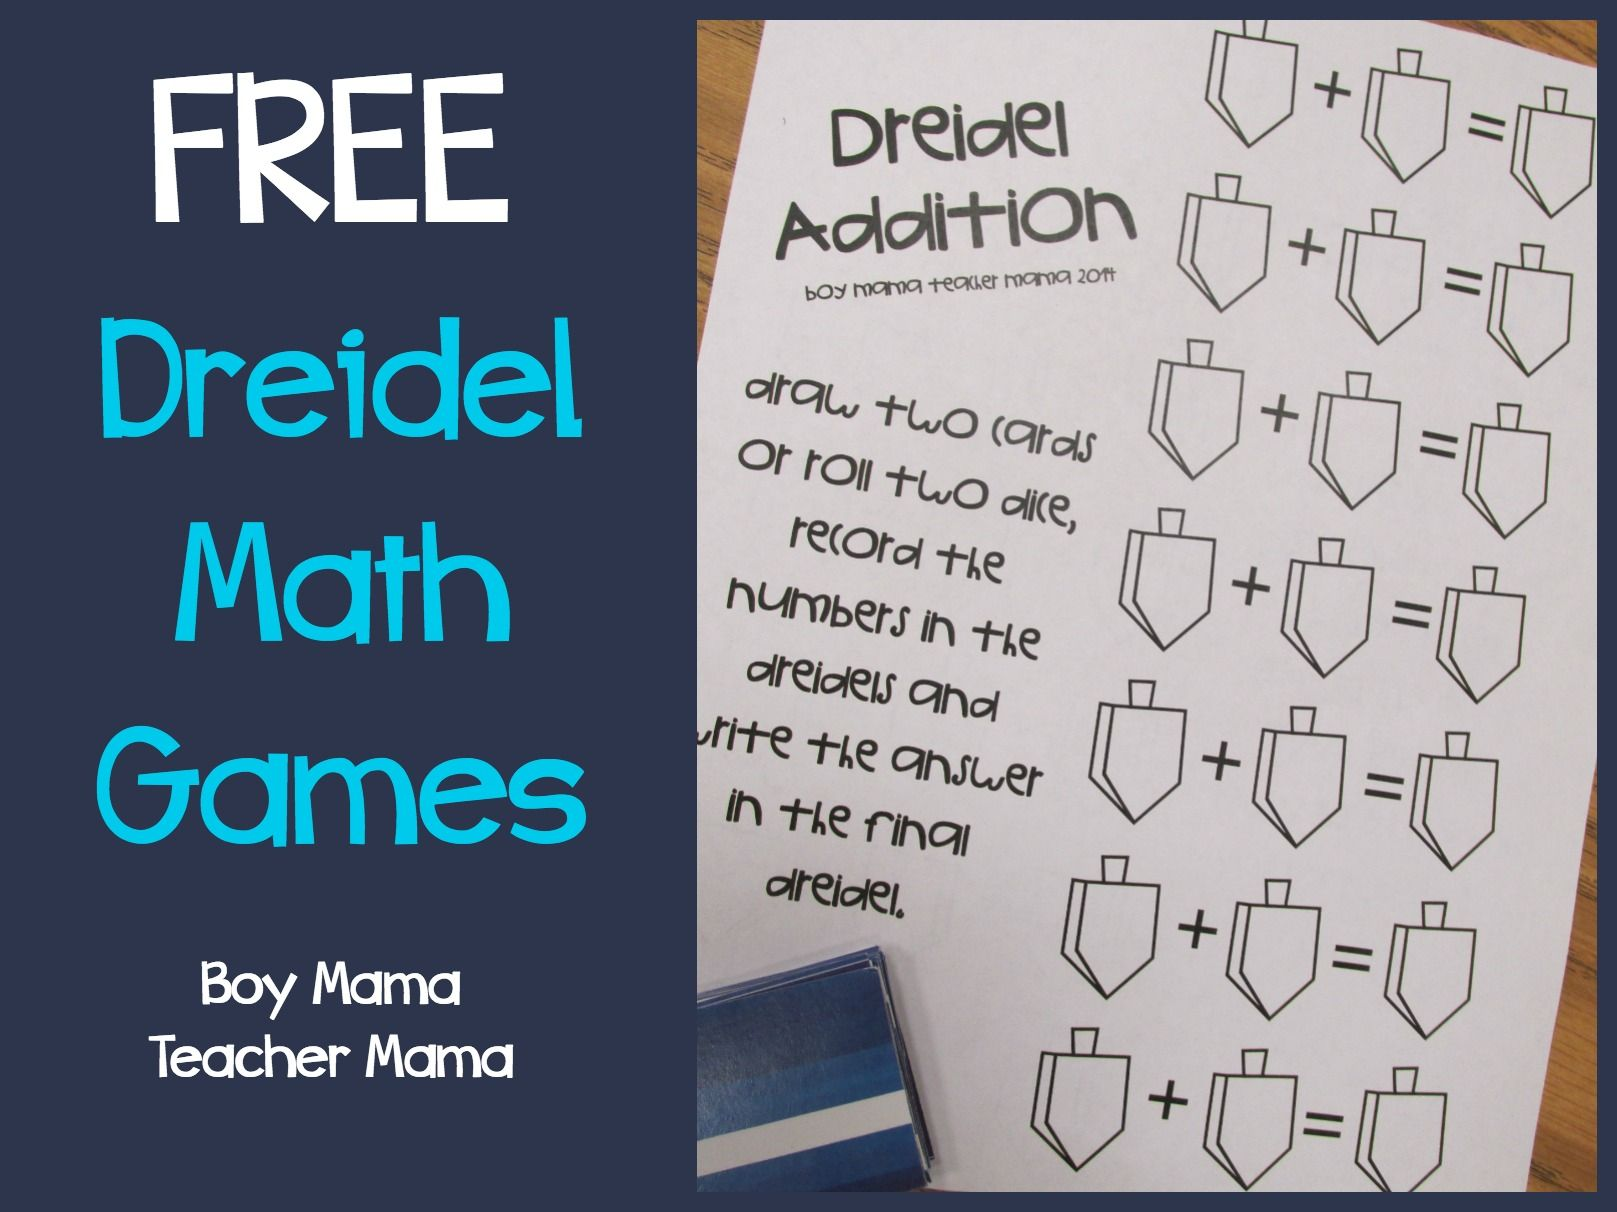 Boy Mama Teacher Mama Free Printable Dreidel Math Game